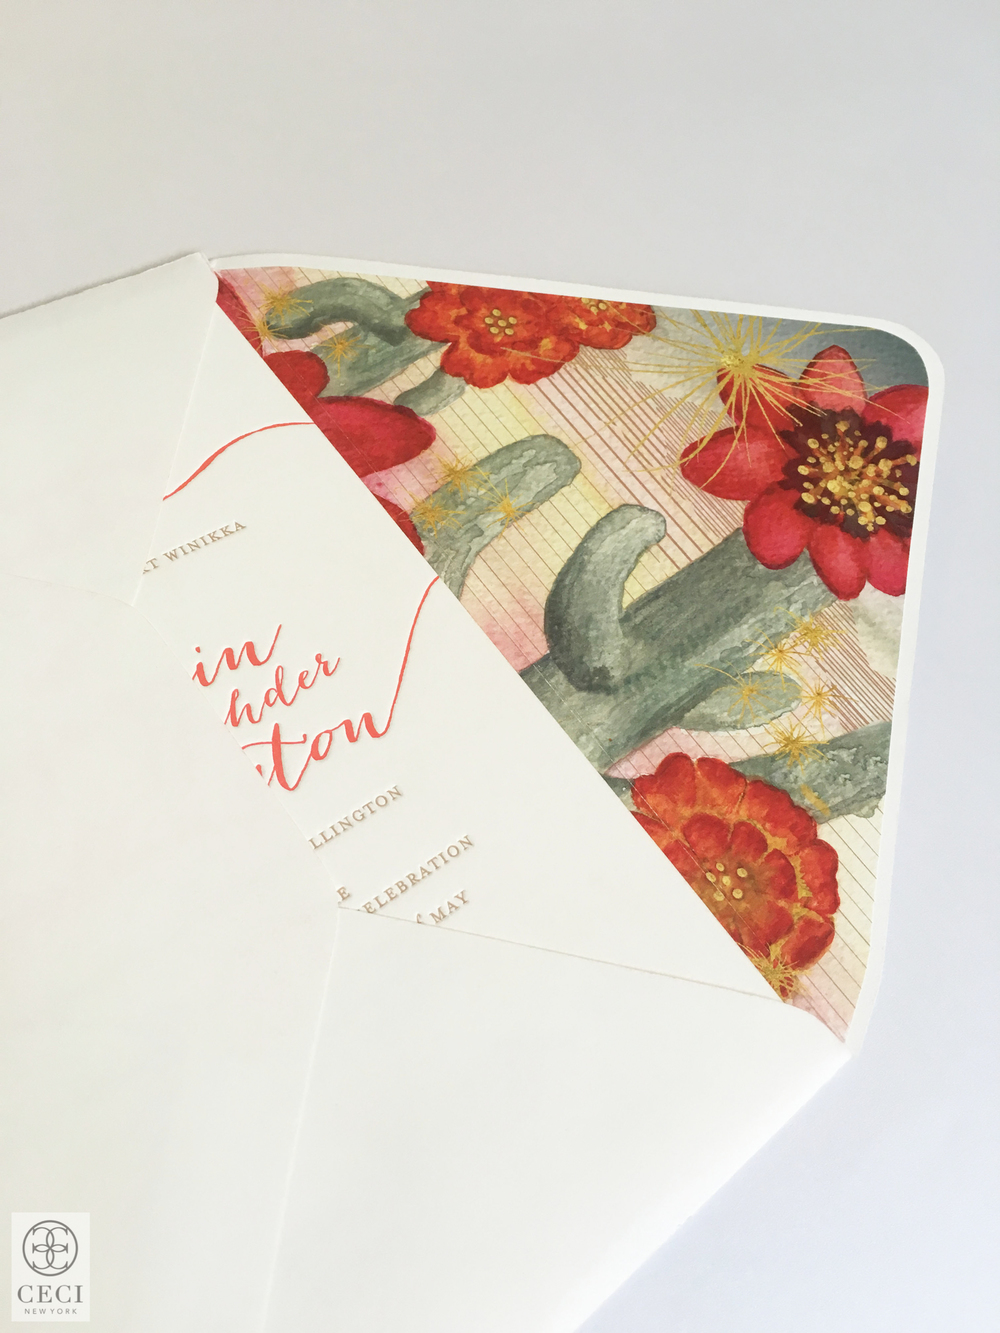 Ceci_New_York_Ceci_Style_Ceci_Johnson_Luxury_Lifestyle_Arizona_Wedding_Watercolor_Inspiration_Design_Custom_Couture_Personalized_Invitations_-16.jpg